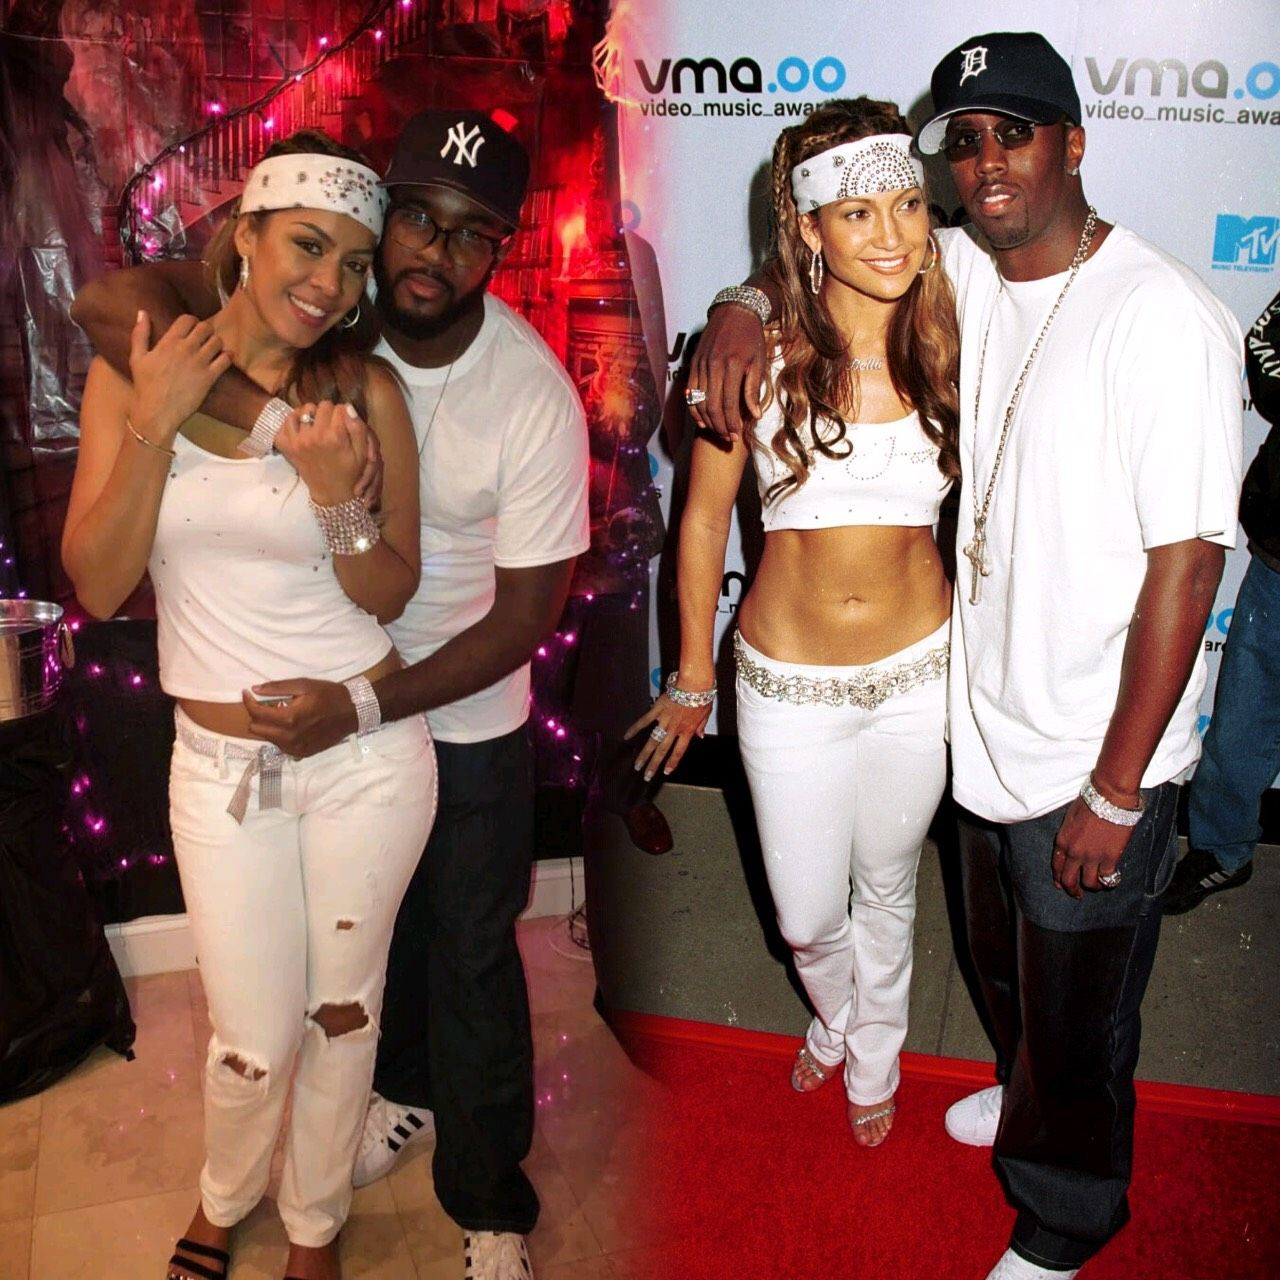 P Diddy Halloween Costume 2020 JLo and Puff VMAs Halloween Costume #couplescostumes #halloween